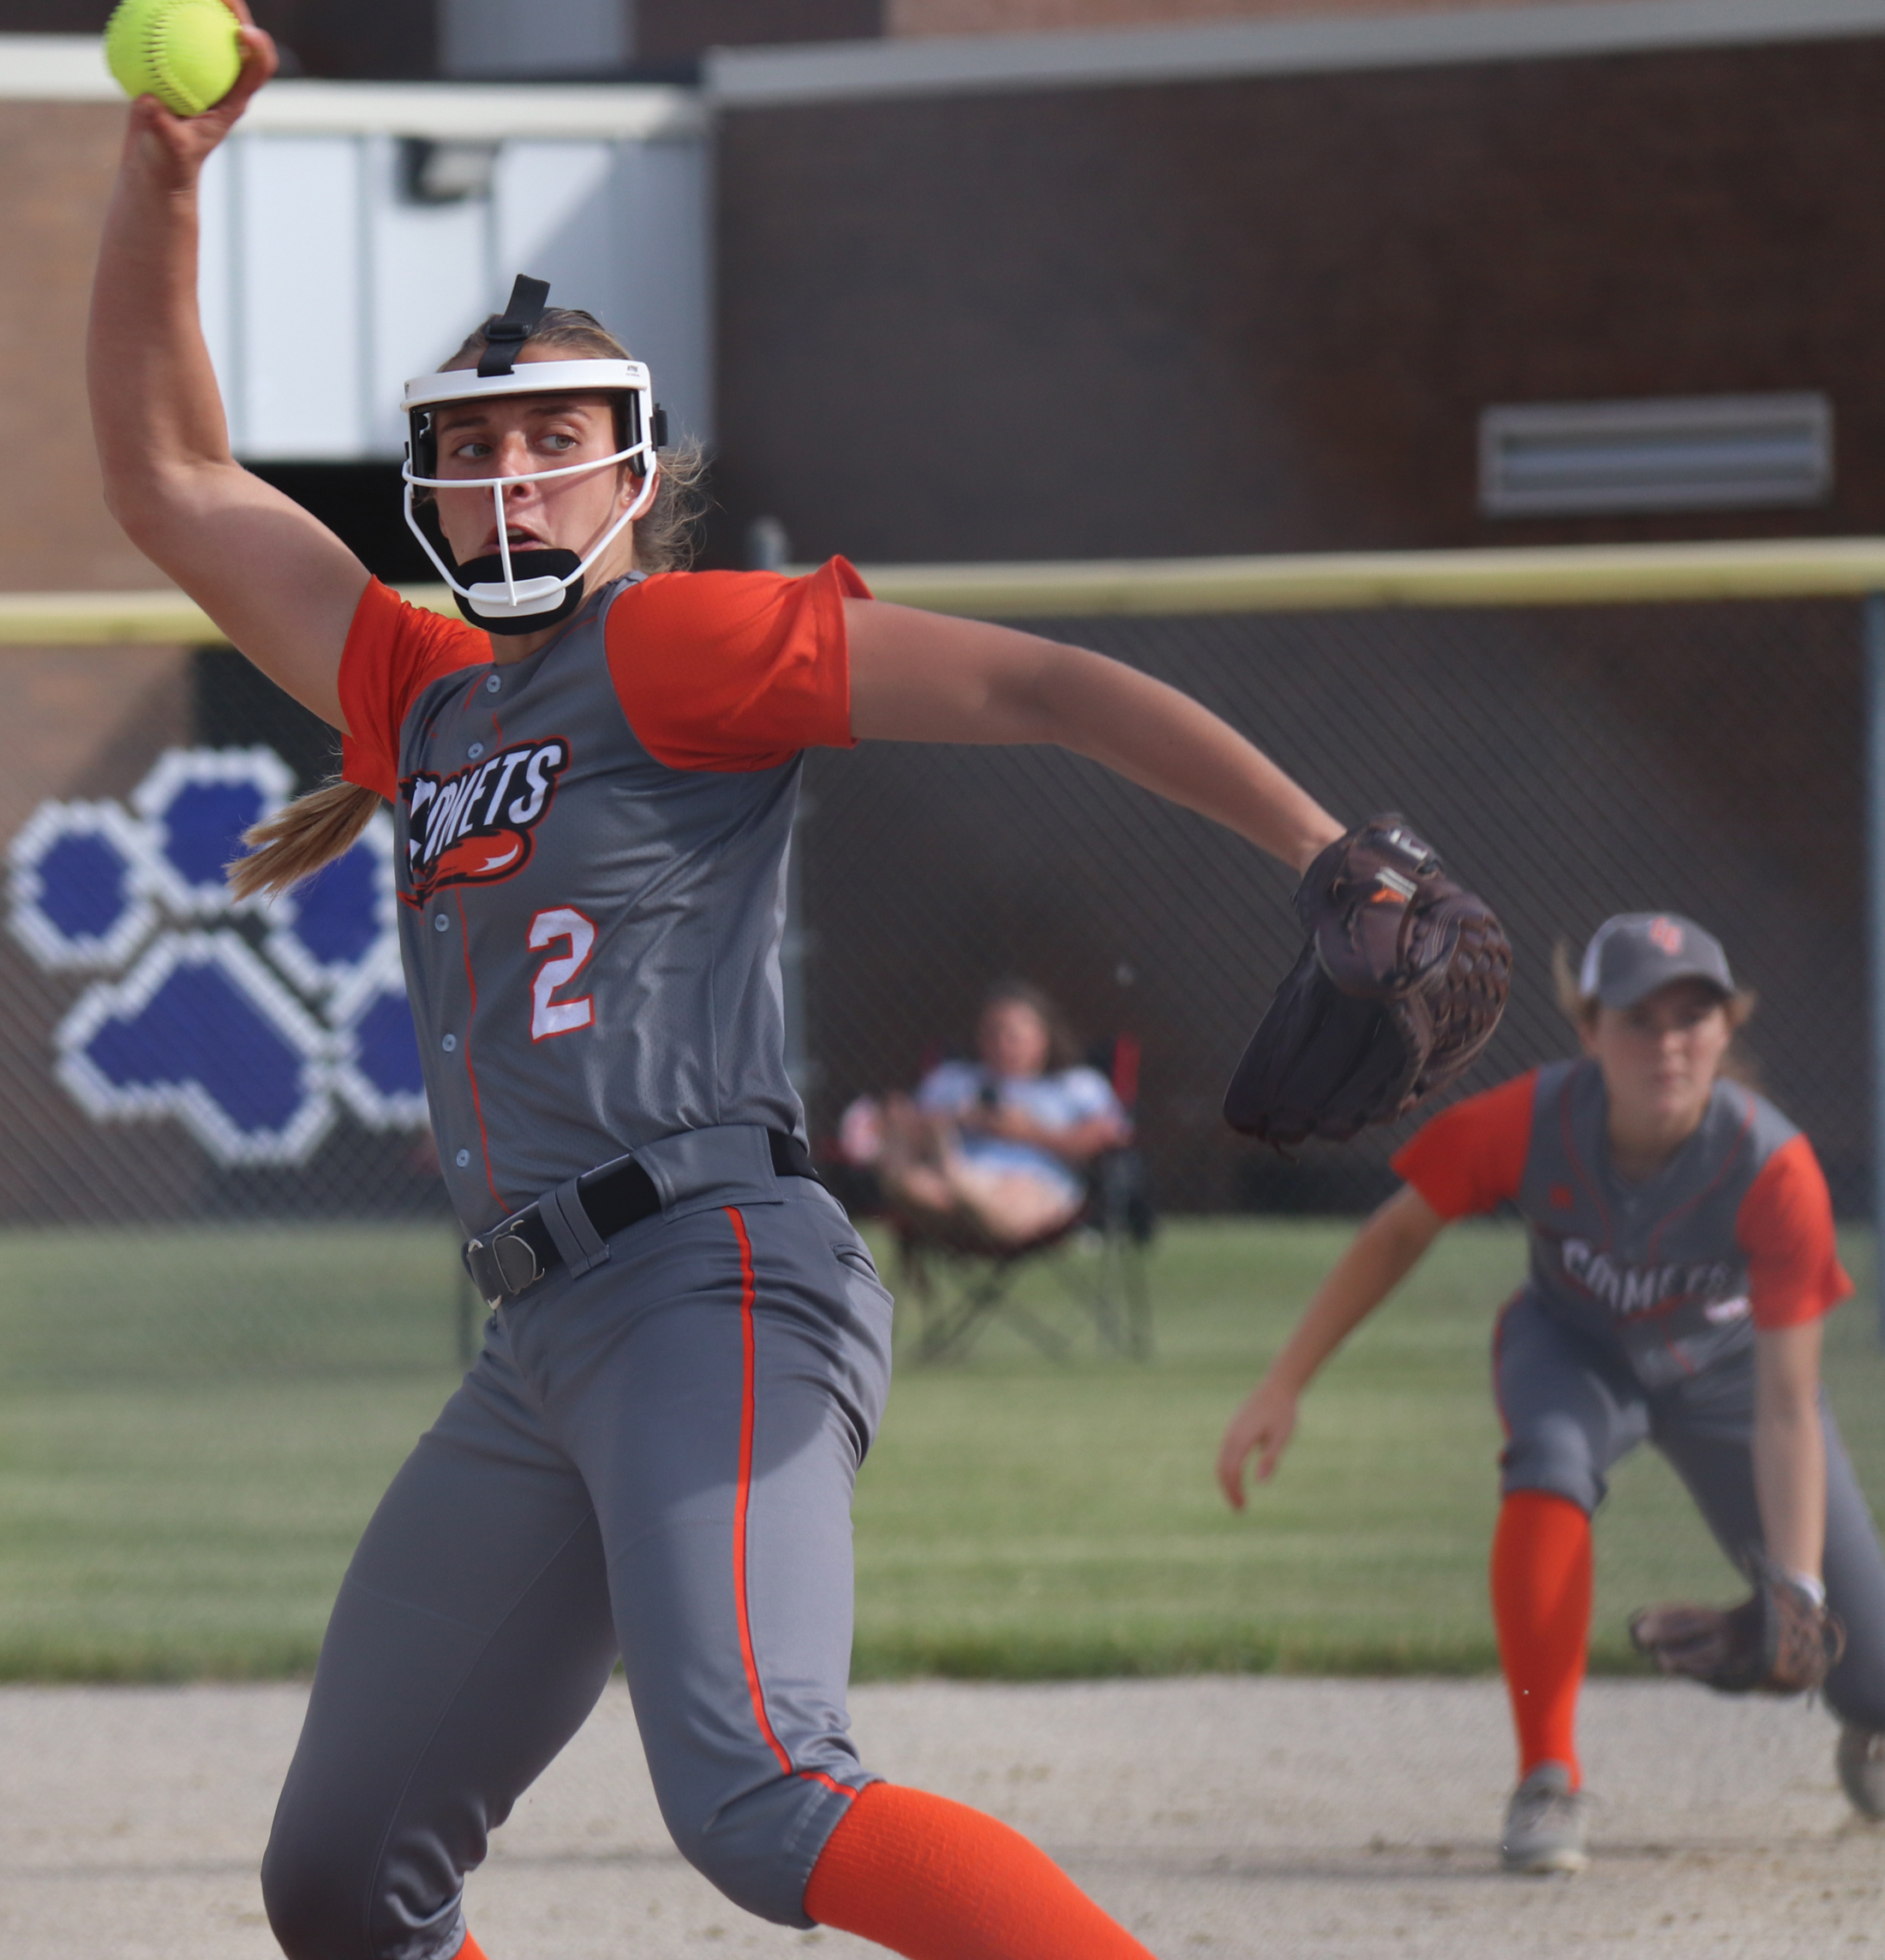 Undefeated Comets win 25th; Heyer whiffs 800th